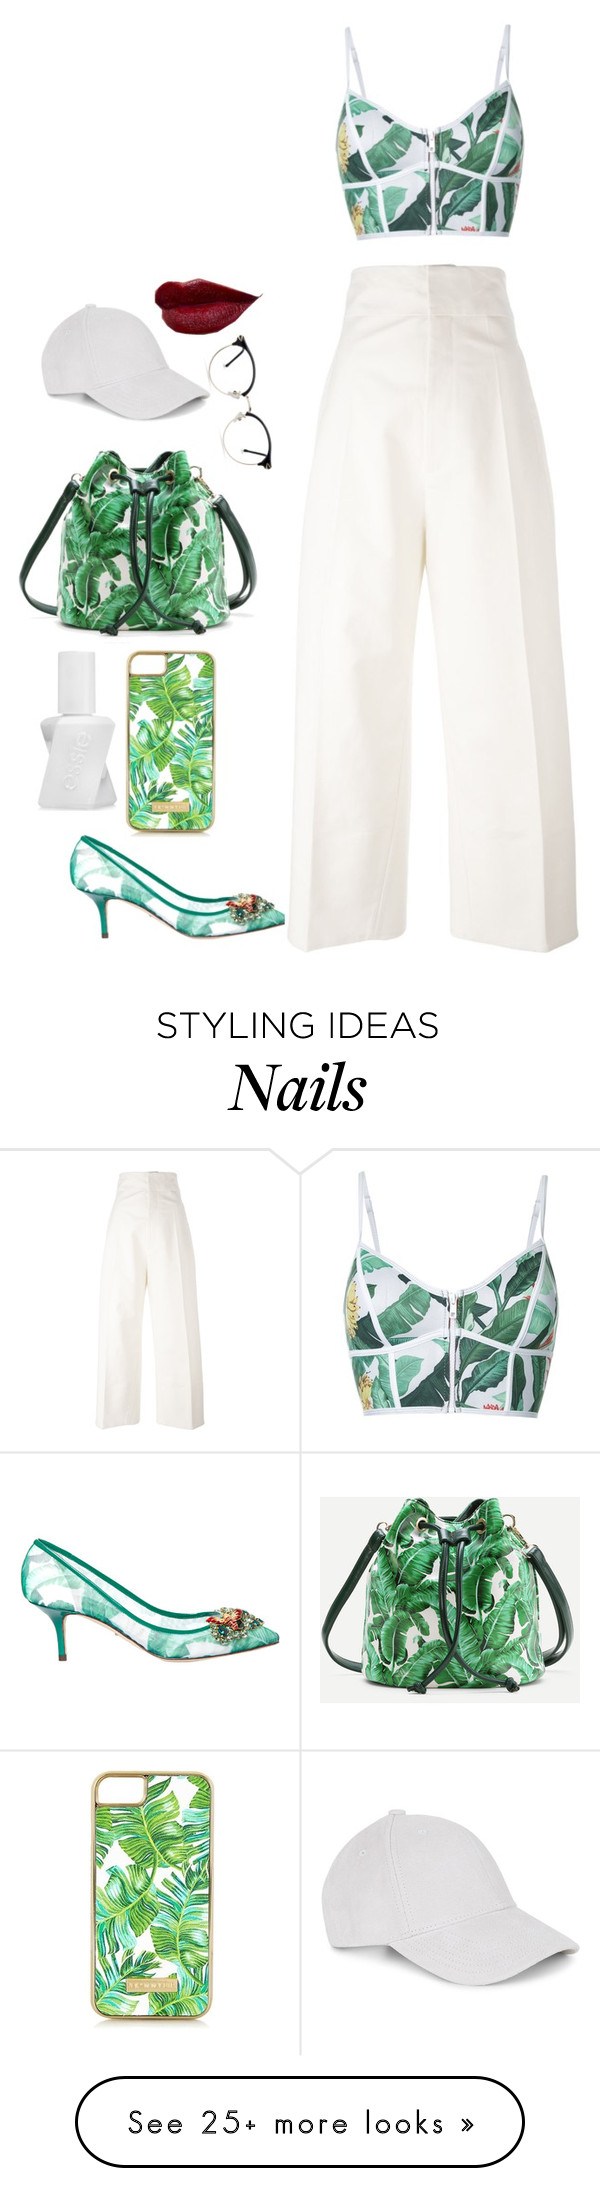 """294%"" by deliriousxdoc on Polyvore featuring Duskii, Dolce&Gabbana, Jacquemus, Skinnydip and Essie"